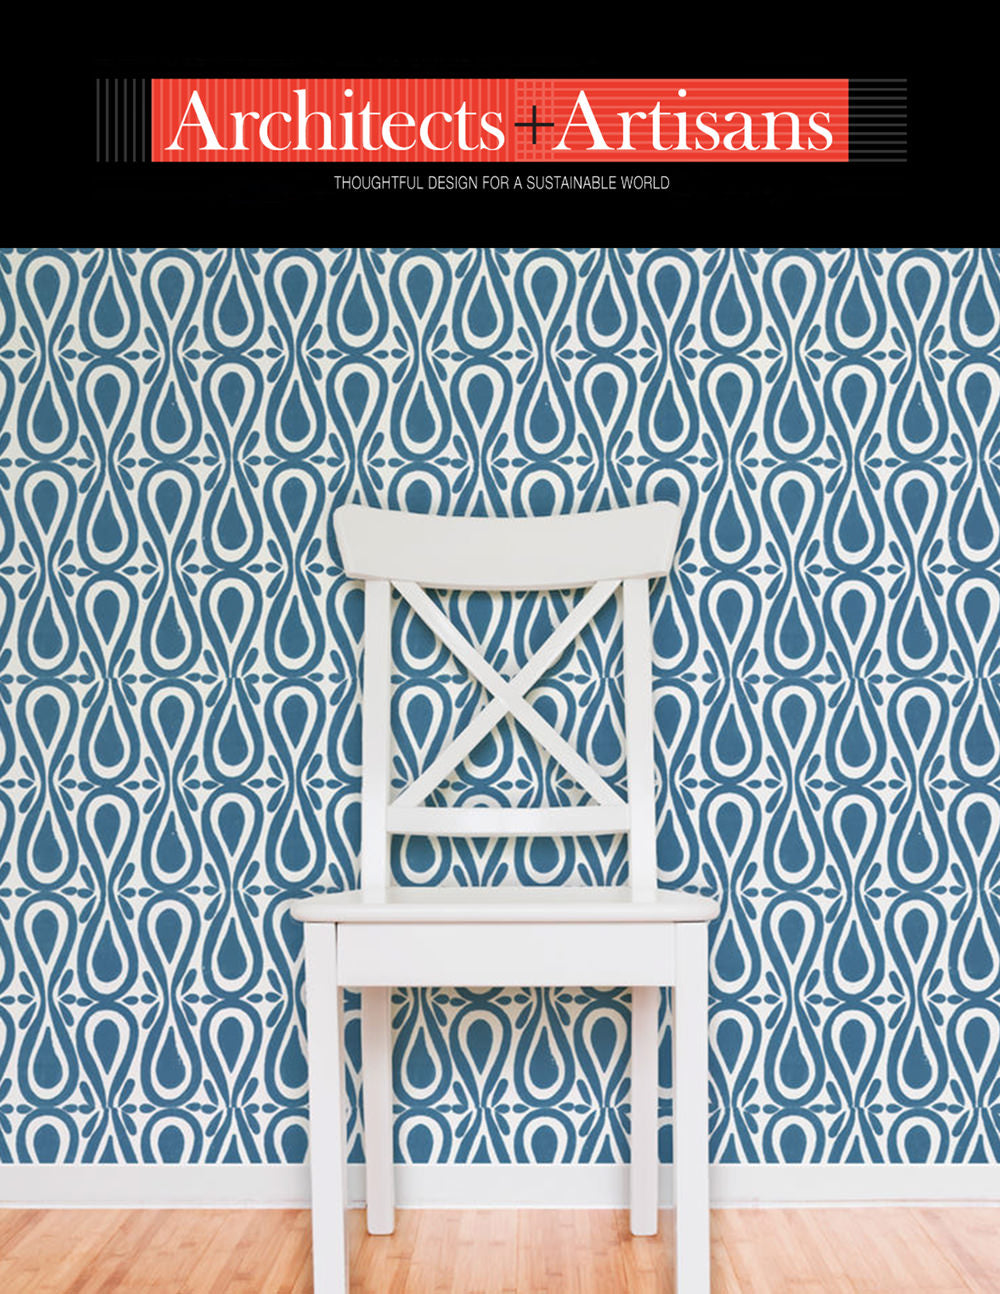 Hand block printed wallpaper in blue - so bold! - Shown in Architects + Artisans